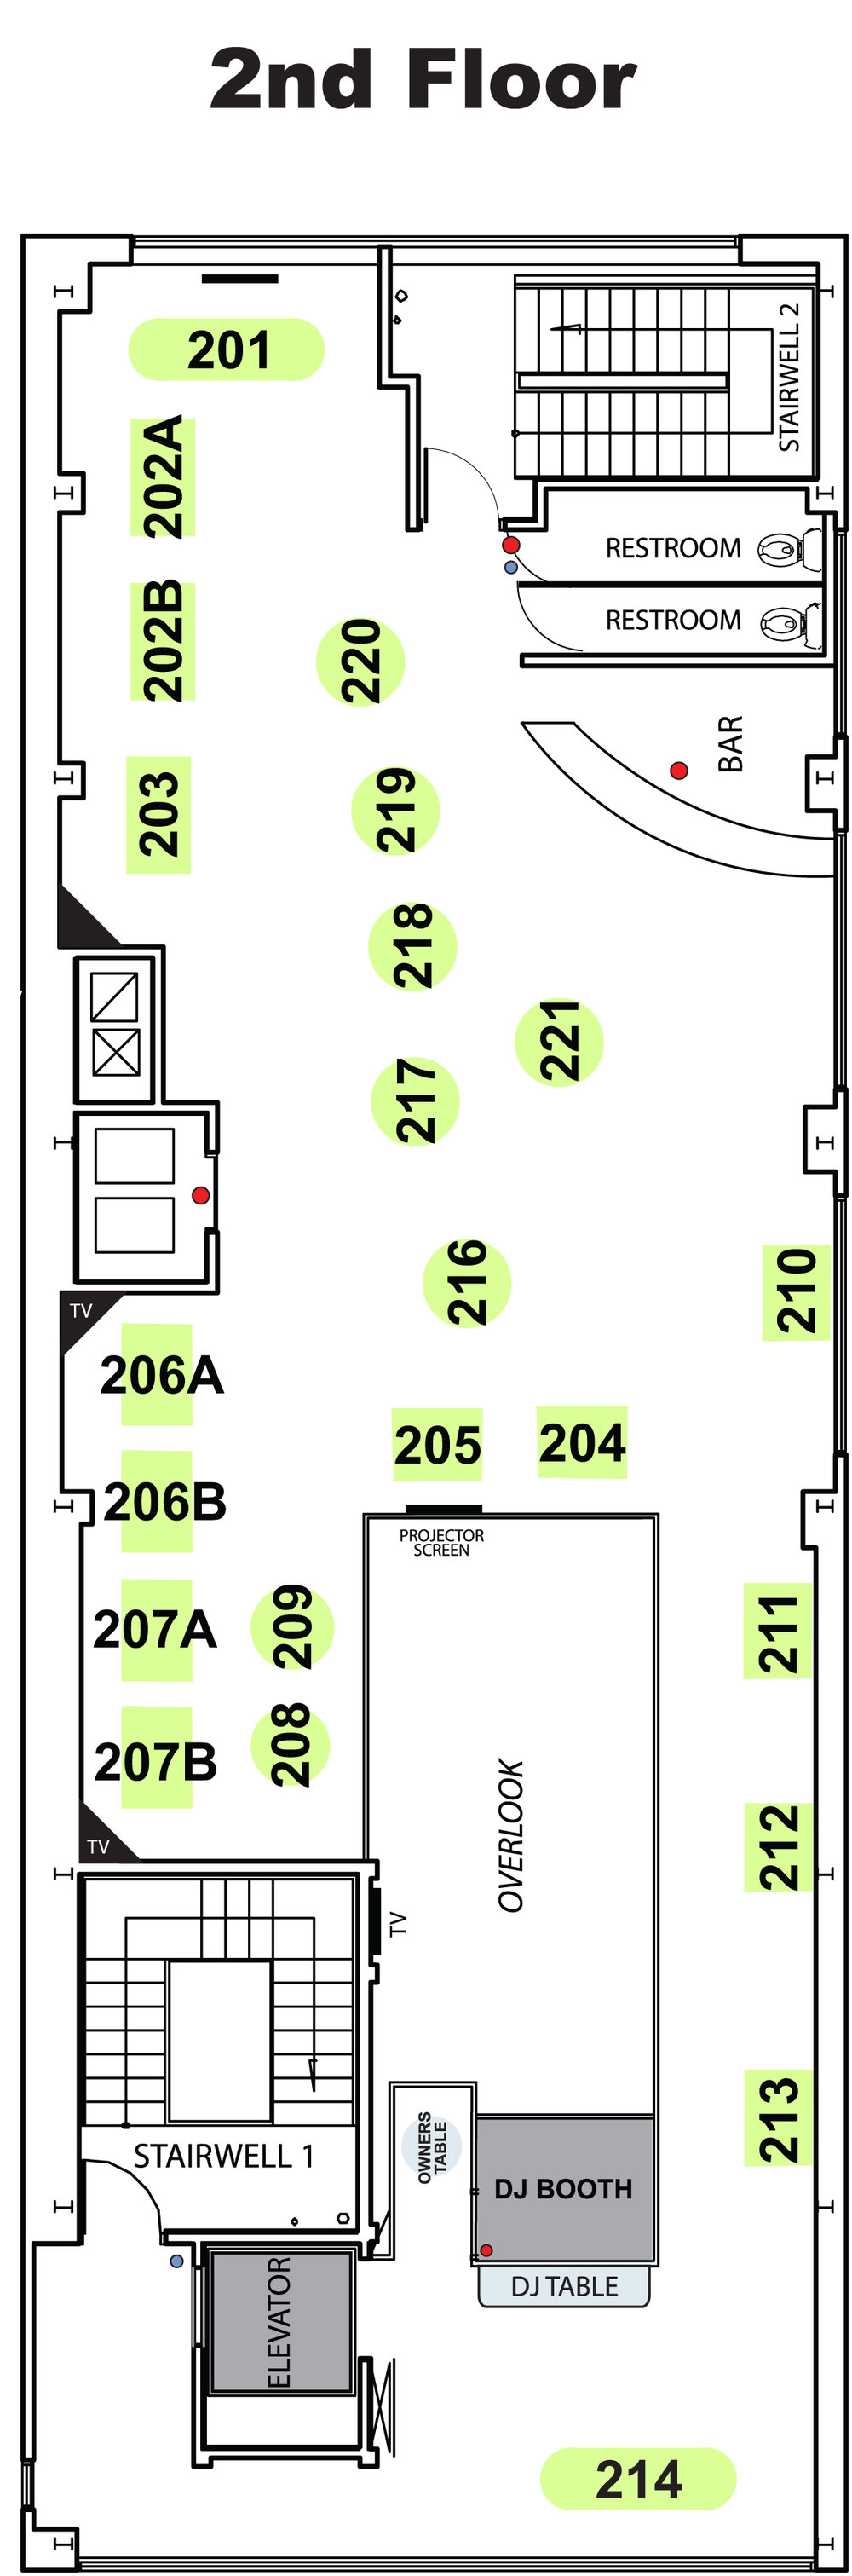 Dinner Floor Plan June 2018 v2-2.jpg